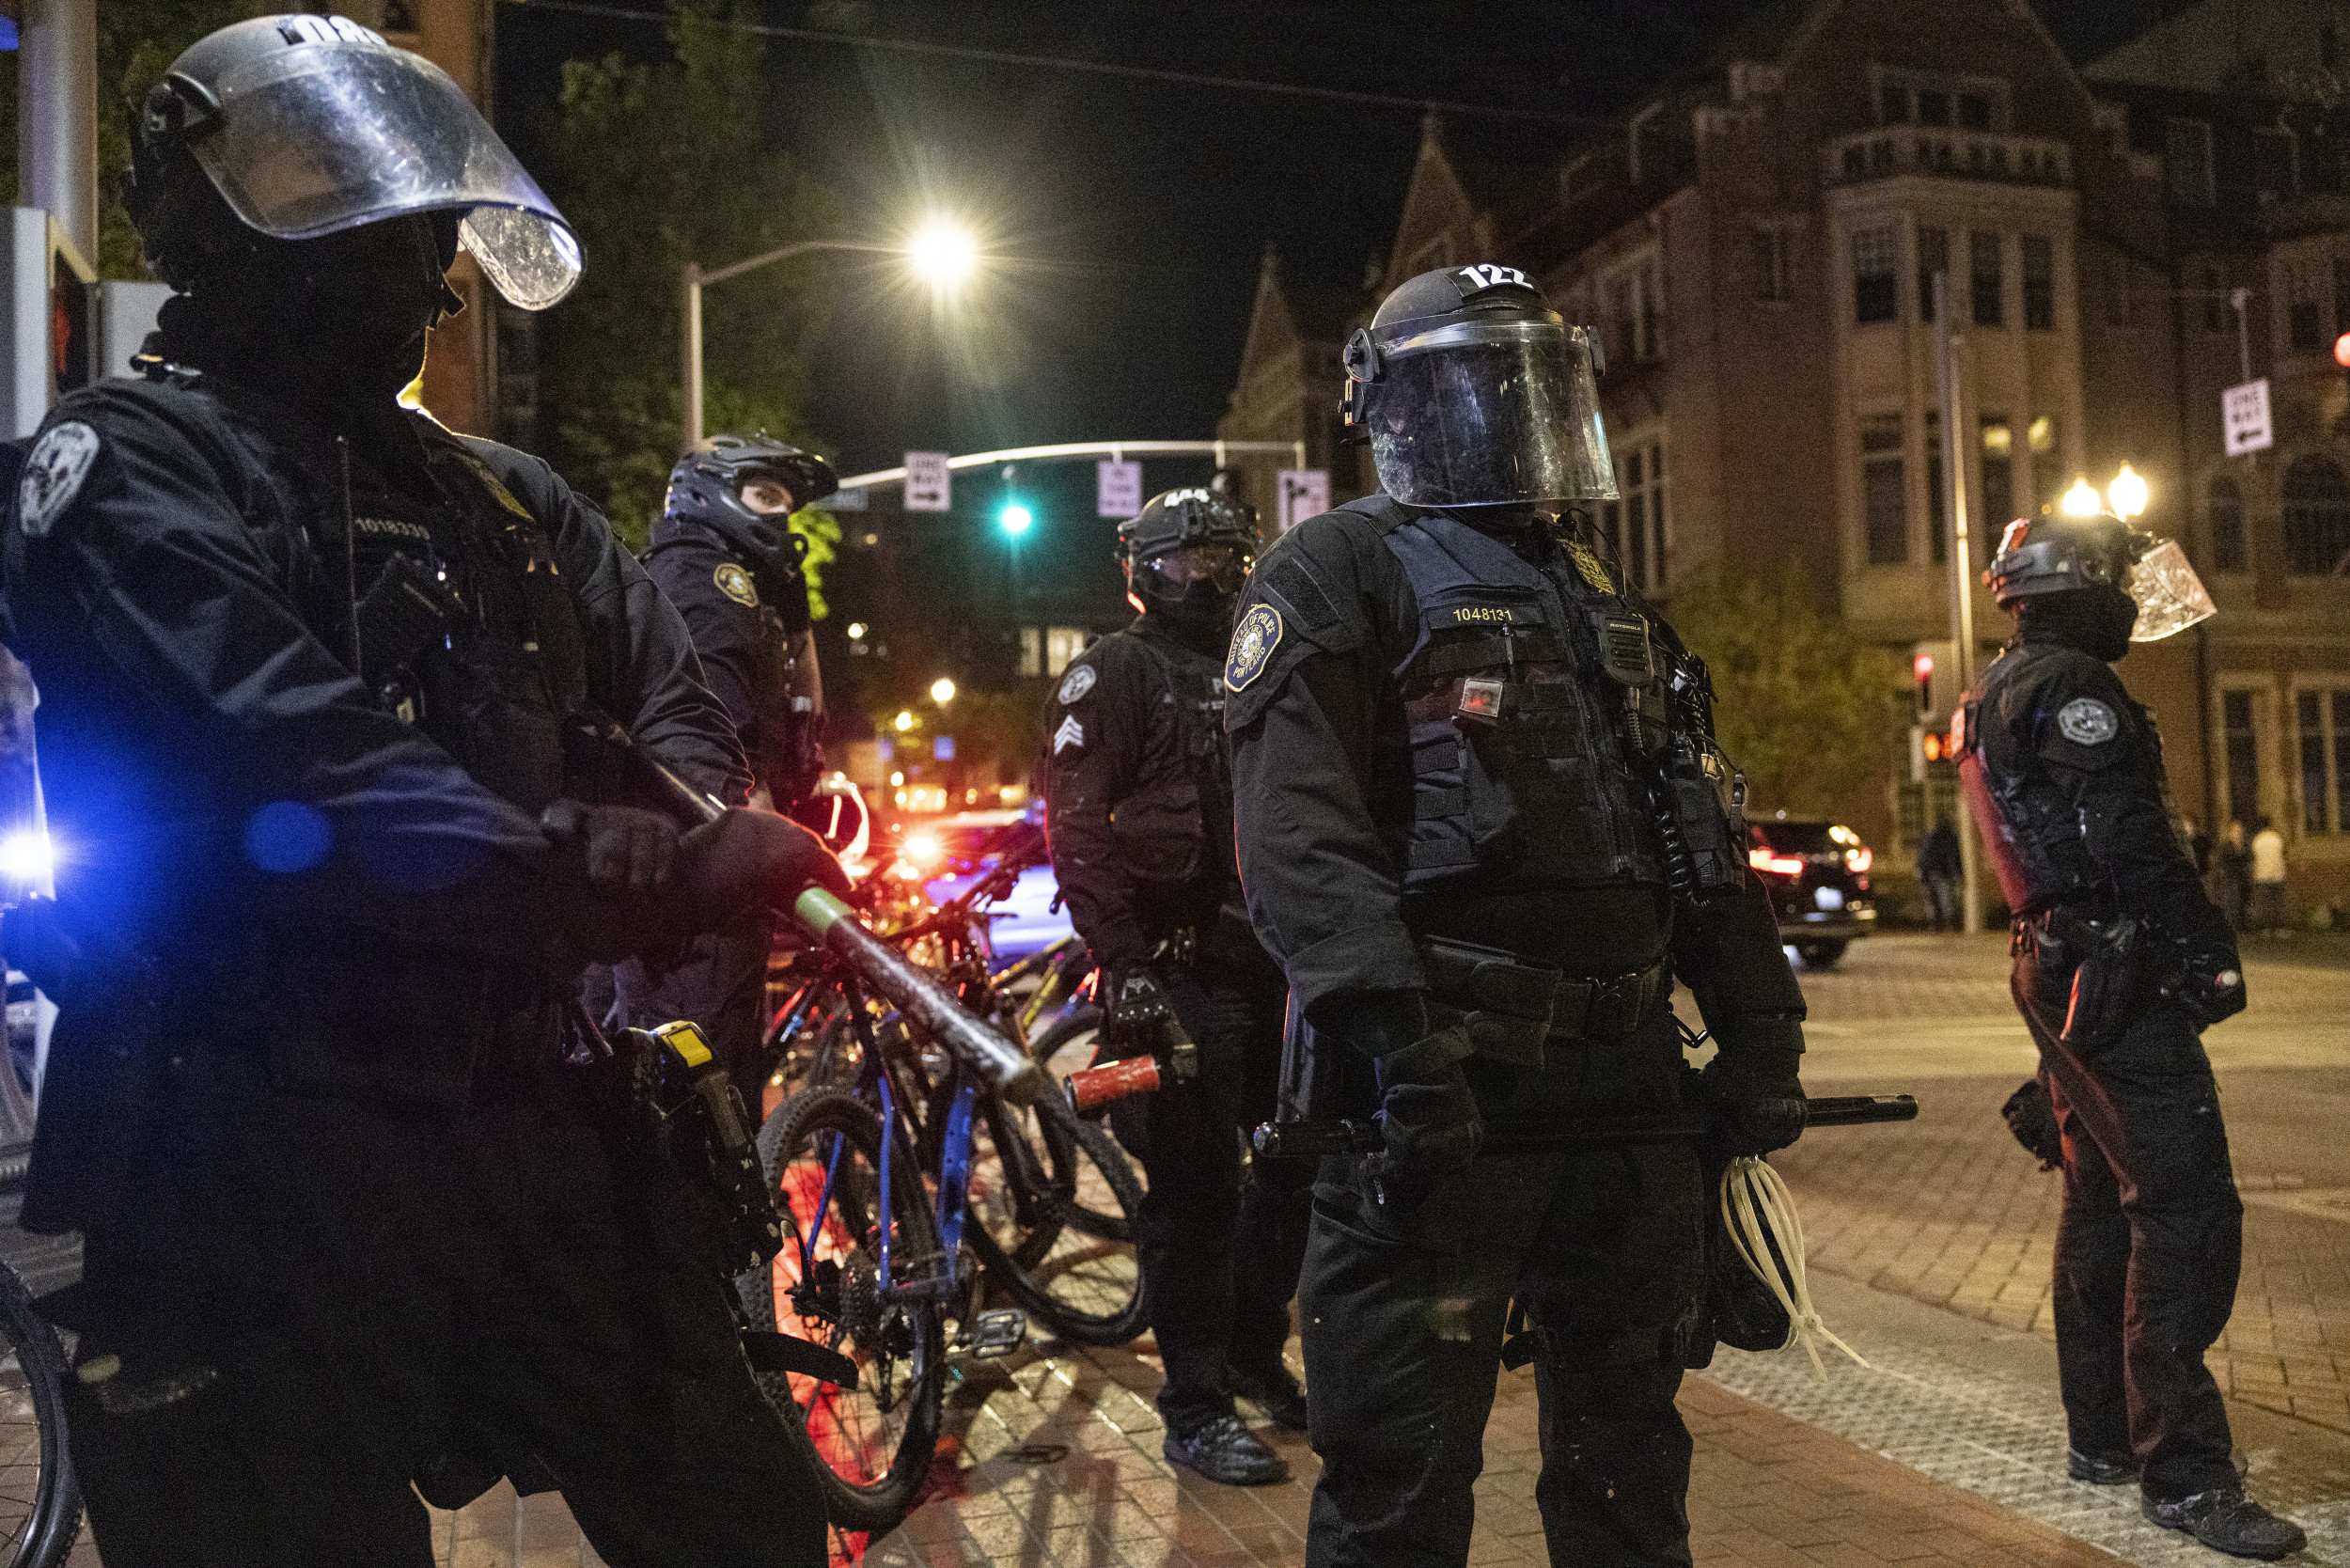 Portland Cop Punched in the Face by Protester, Sent Crashing to the Ground